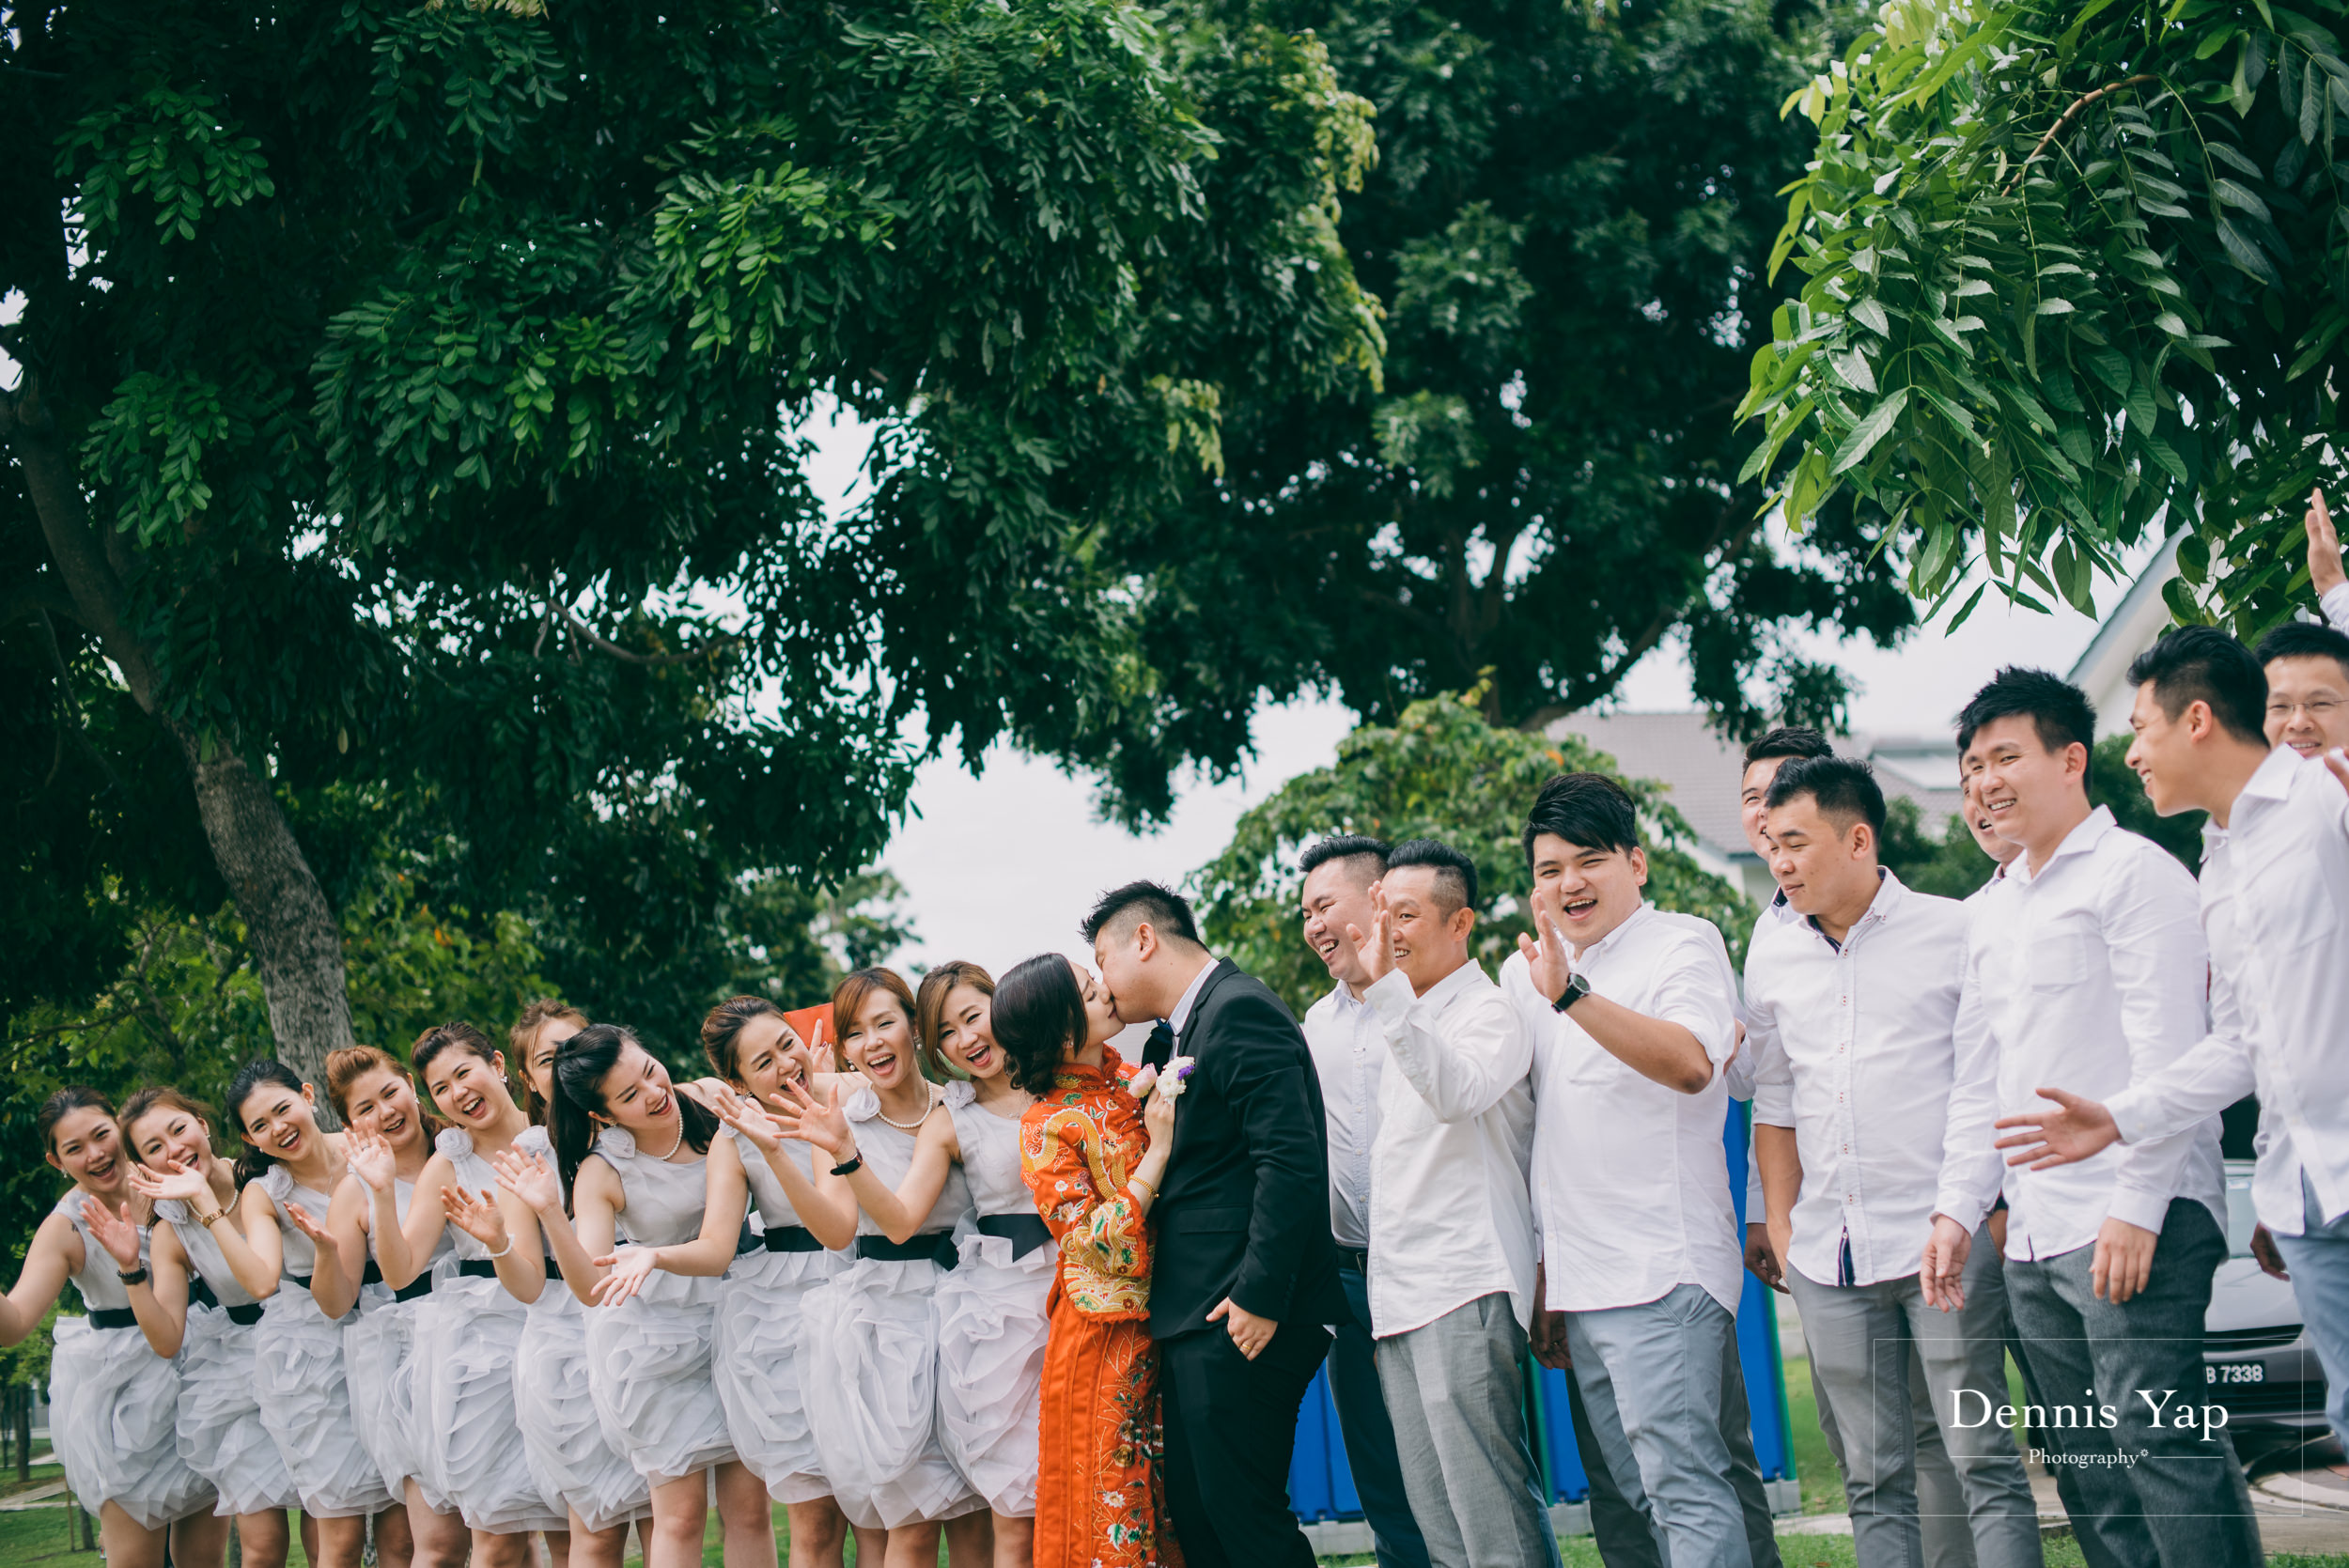 johnson joanne wedding gate crash malaysia wedding photographer dennis yap botanic klang-23.jpg